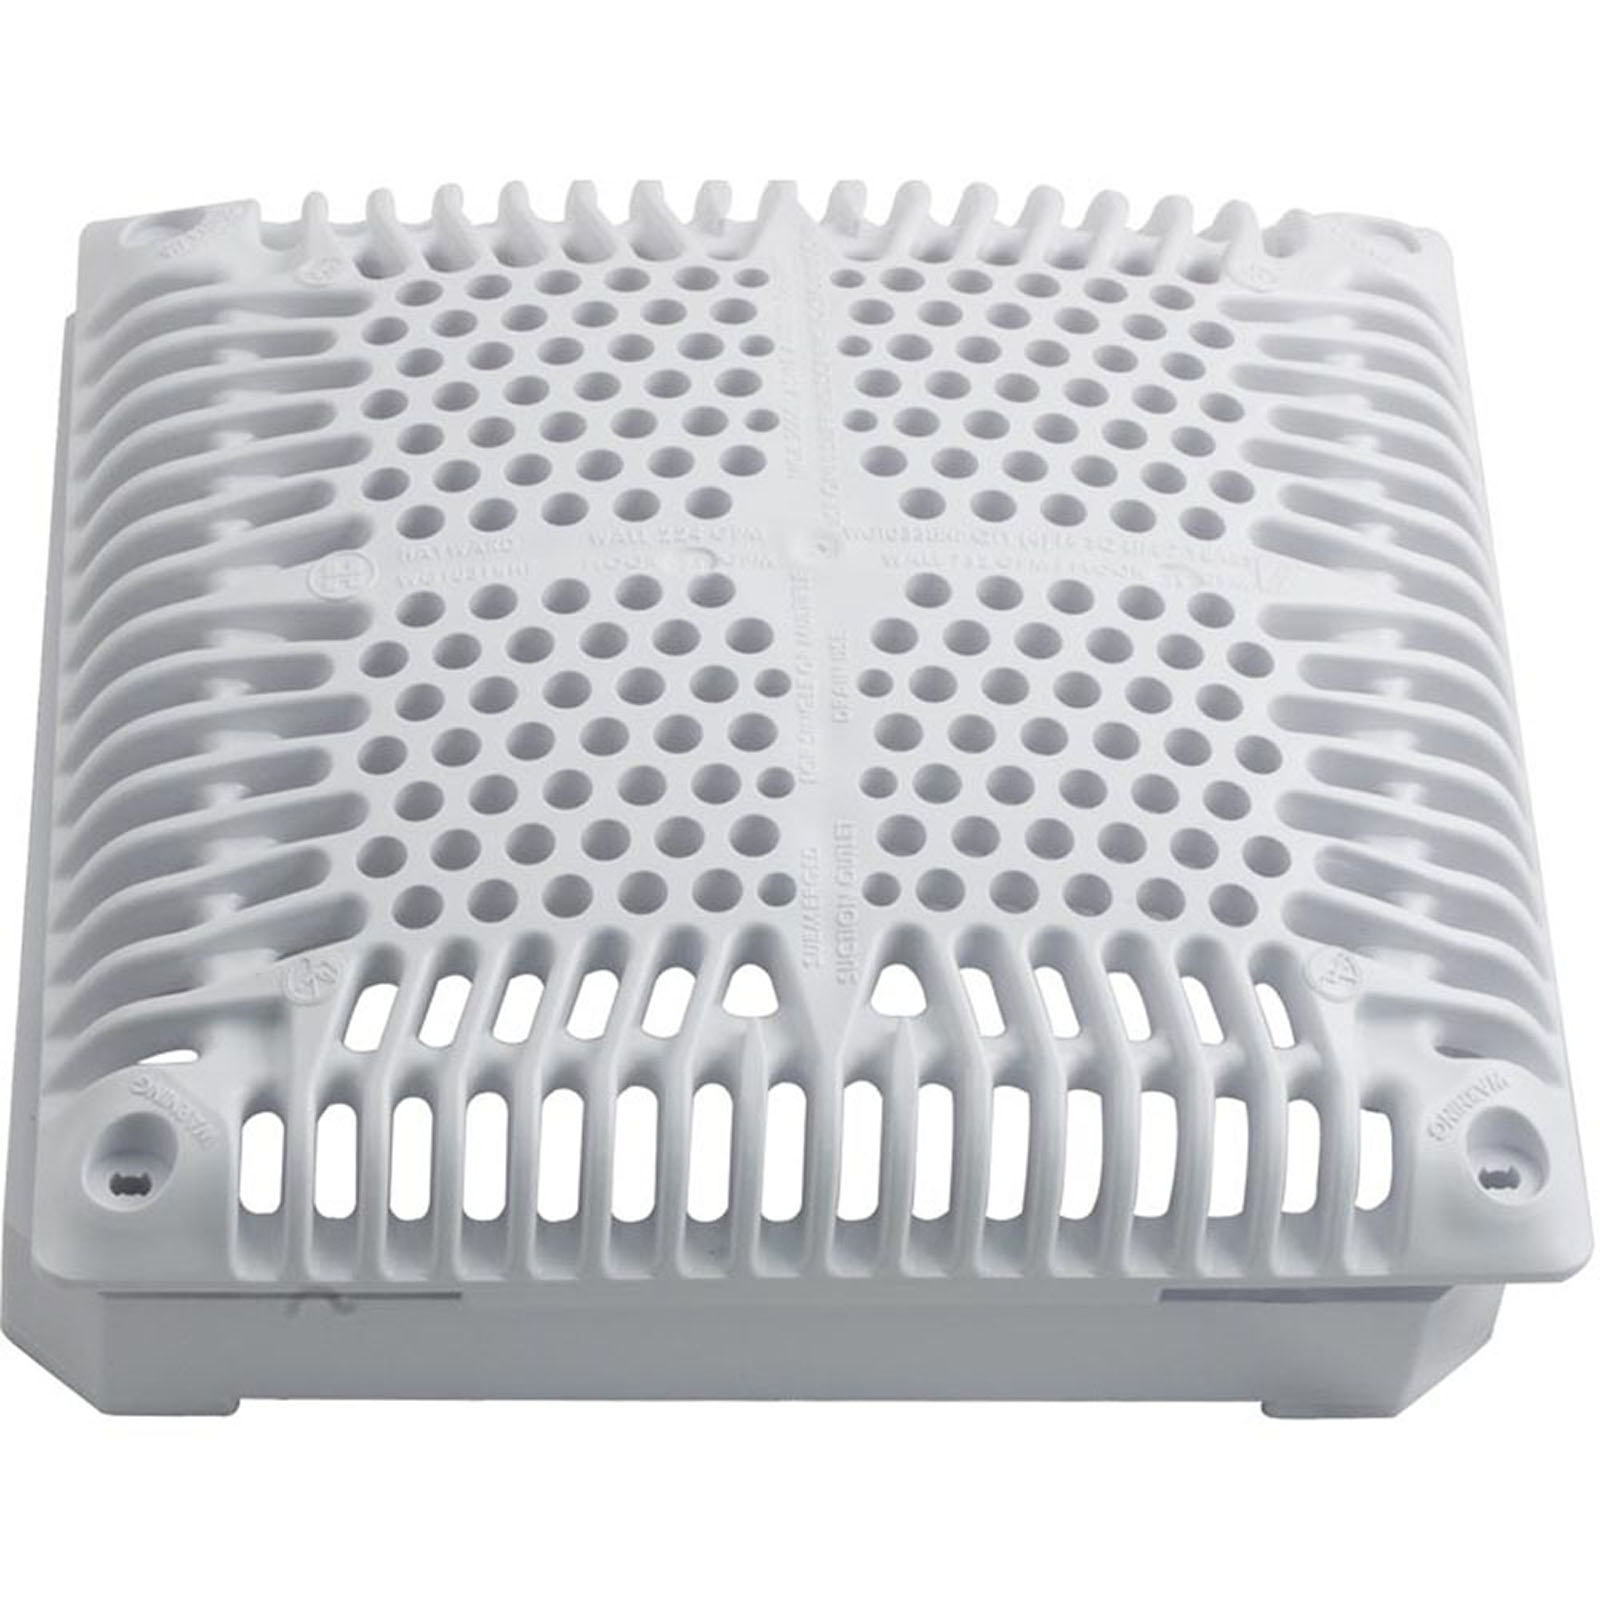 55-150-2182 - Main Drain Grate, Hayward 9 Inch x 9 Inch Square, with Frame - WGX1031BHF2 - 55-150-2182